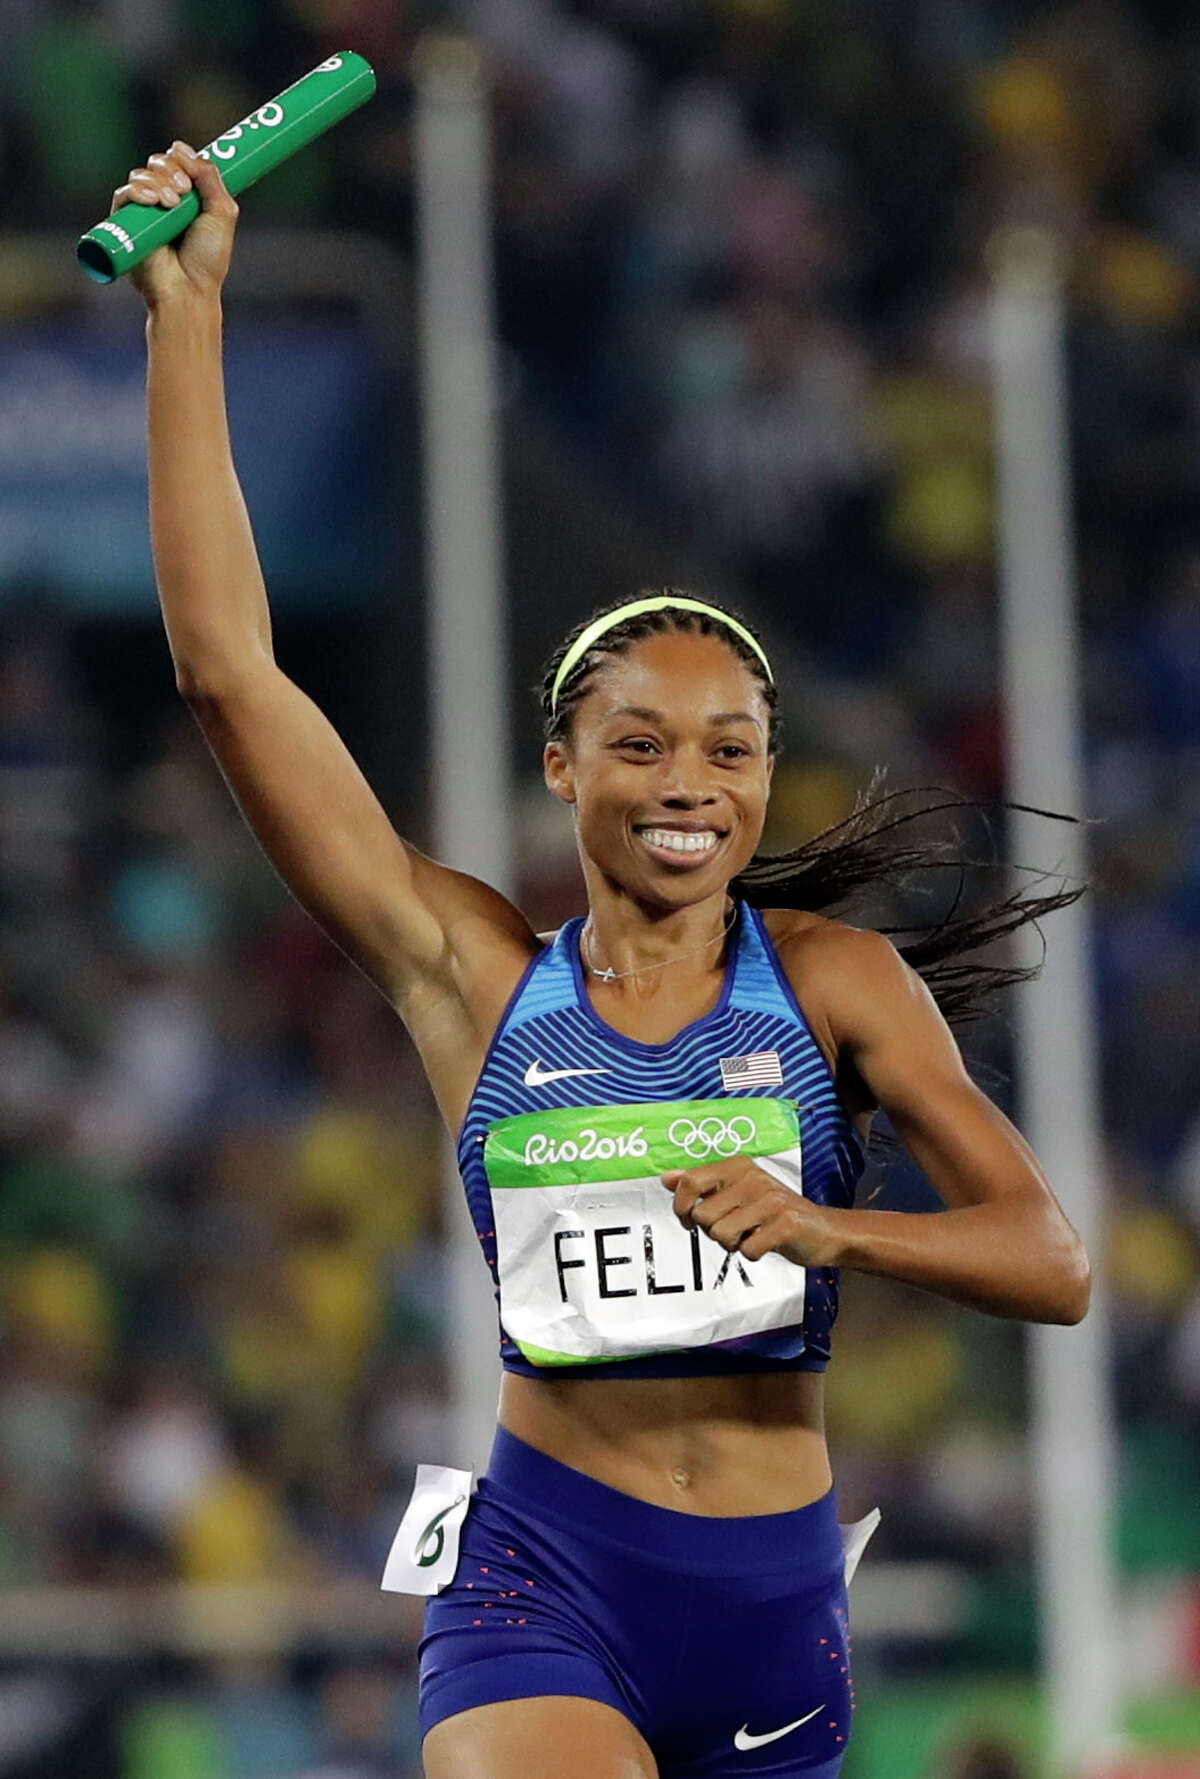 United States' Allyson Felix crosses the line to win the gold medal in the women's 4x400-meter relay final during the athletics competitions of the 2016 Summer Olympics at the Olympic stadium in Rio de Janeiro, Brazil, Saturday, Aug. 20, 2016. (AP Photo/David J. Phillip)